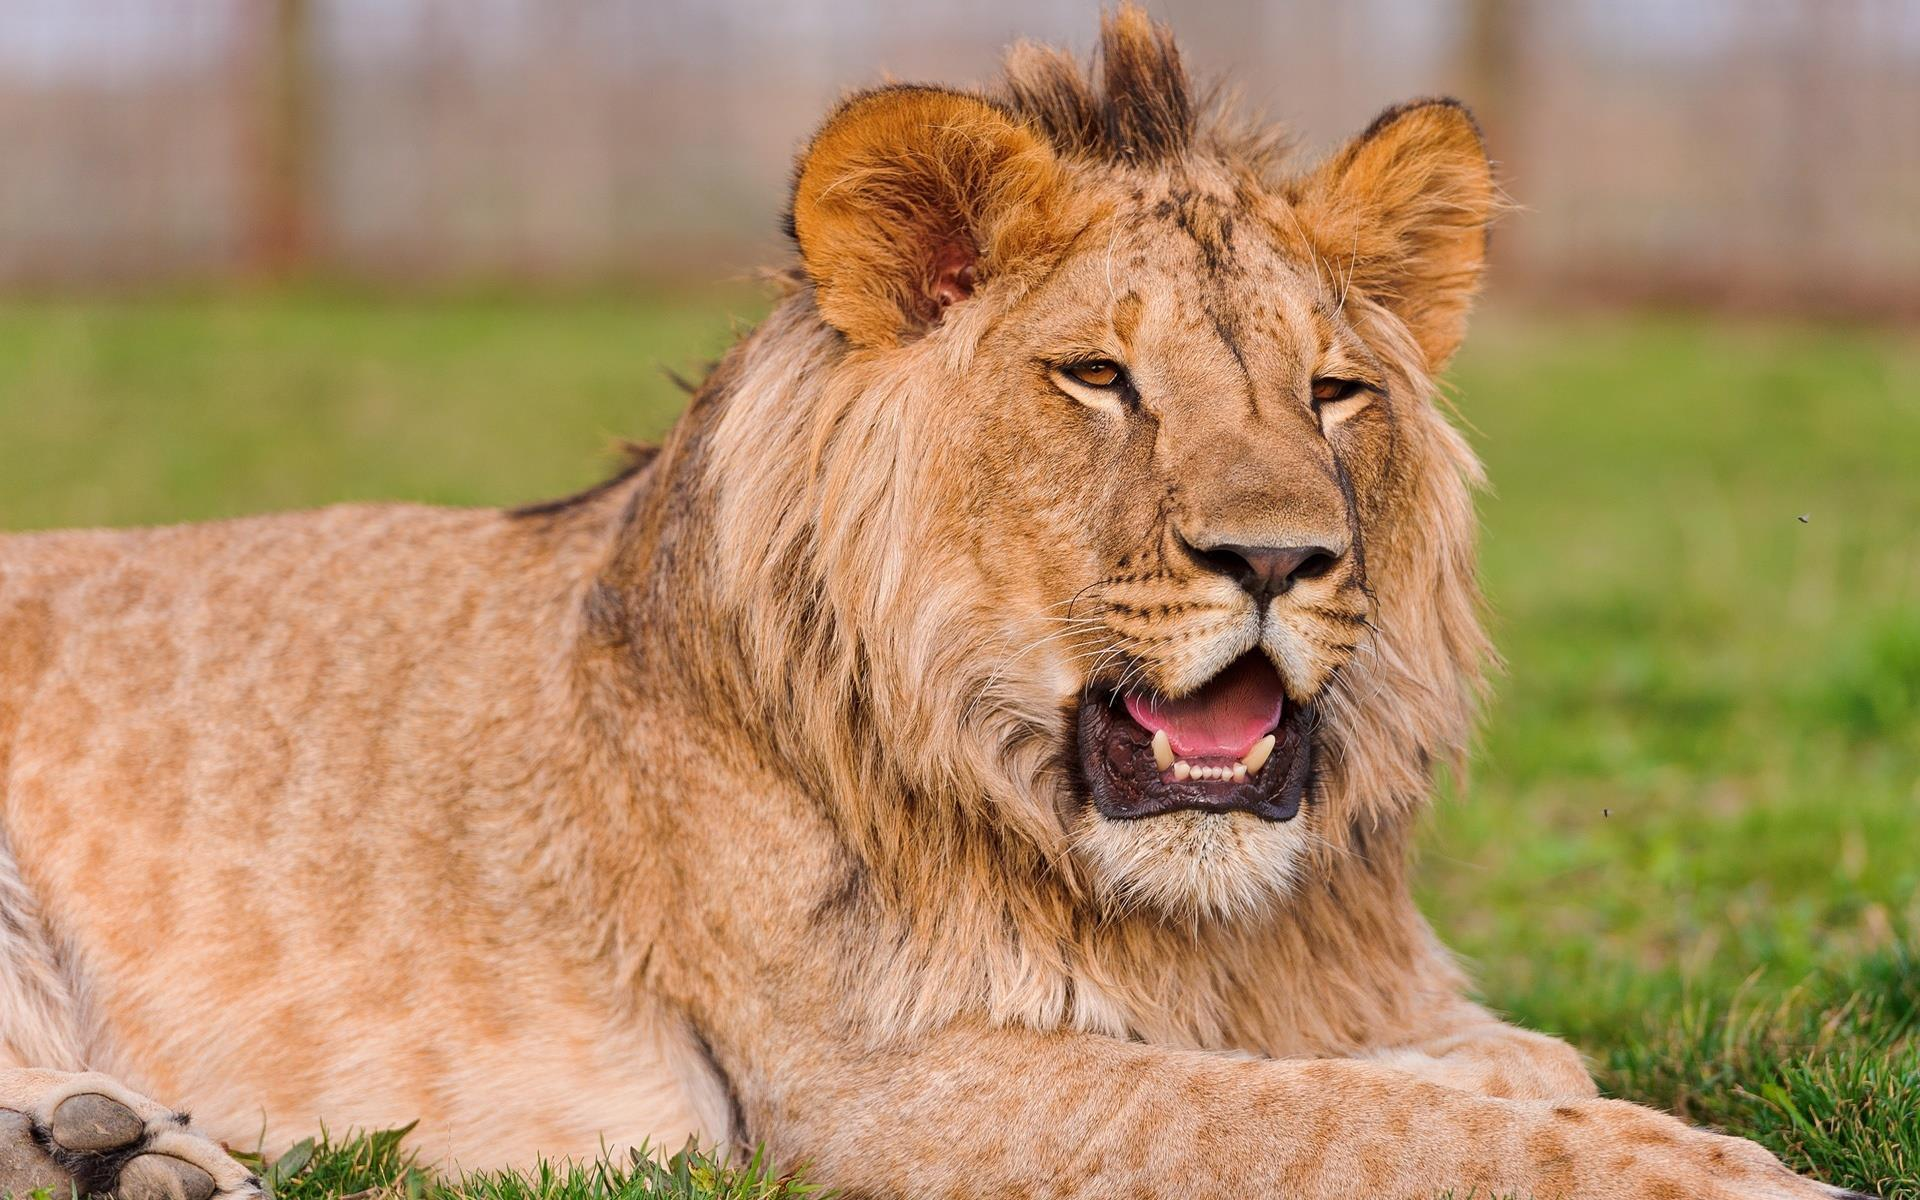 LION_animaux-sauvages_HD-a-telecharger_06